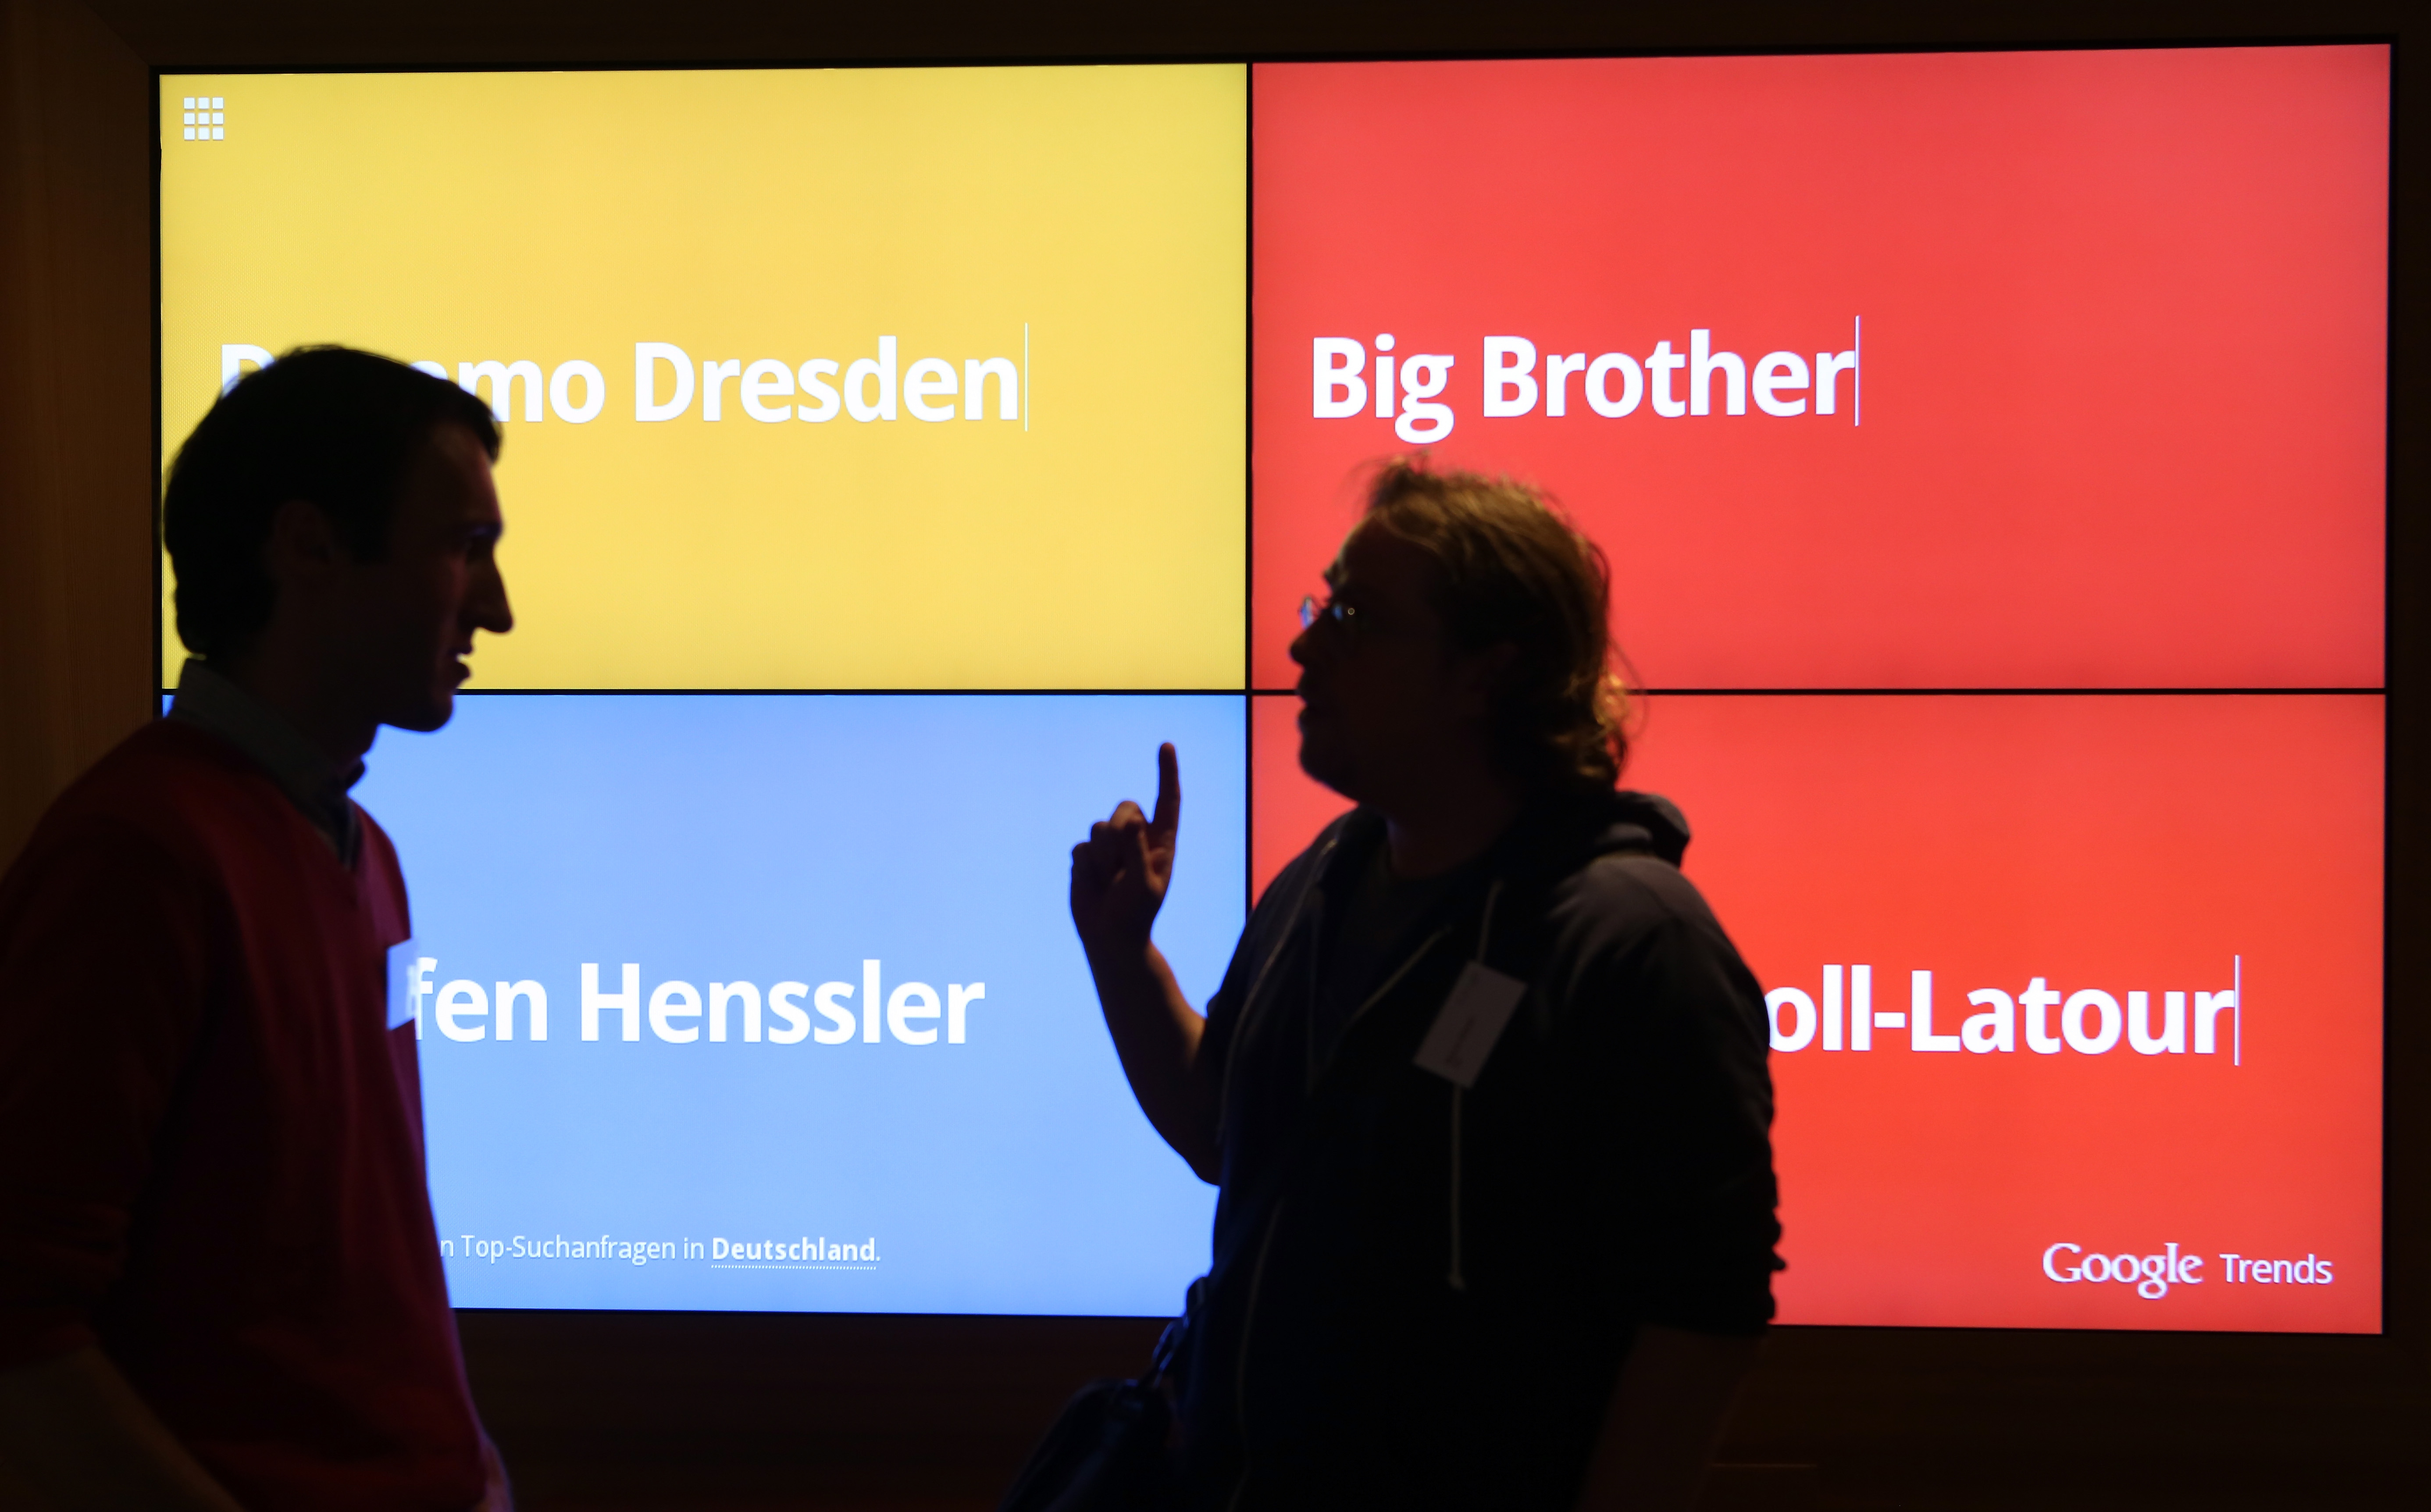 Visitors stand in front of a screen showing the most popular Google searches in Germany at that moment in the company's offices on Aug. 21, 2014 in Berlin.